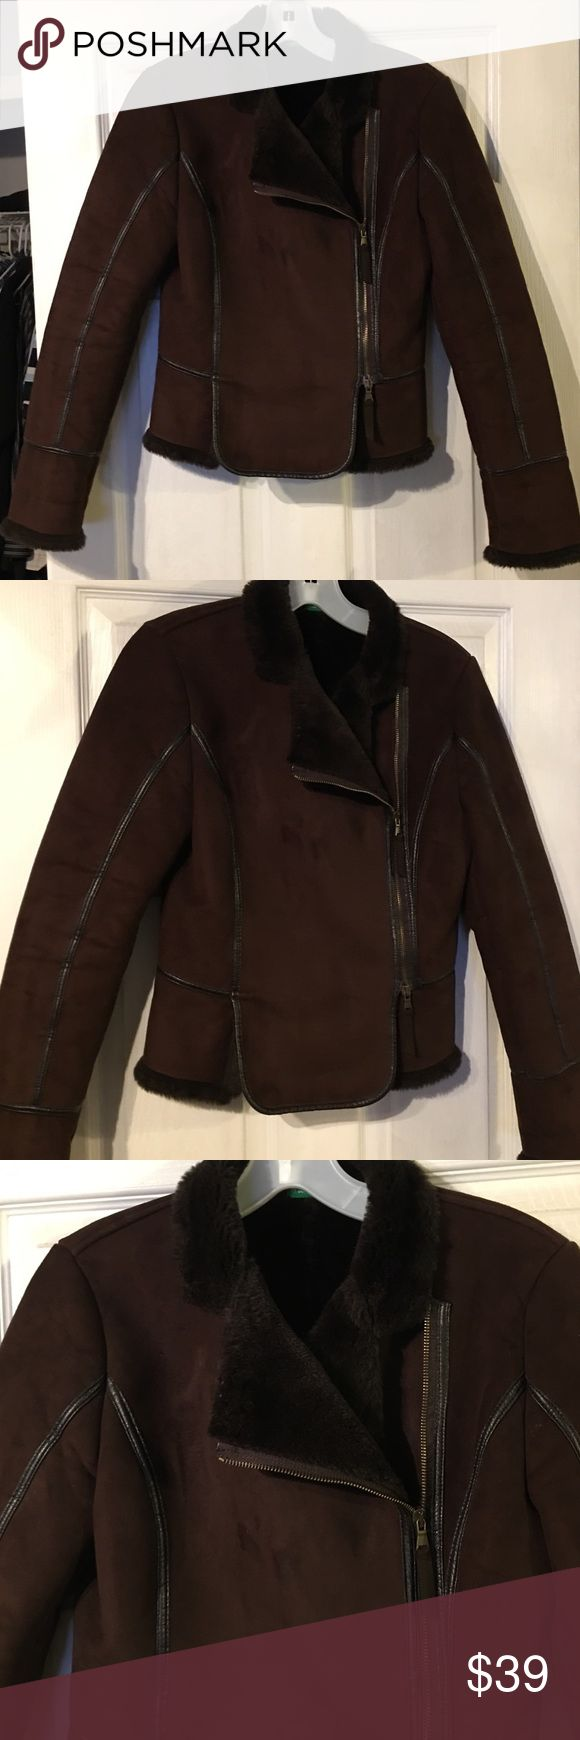 Made in Ukraine of Benetton US 9/10 suede jacket Made in Ukraine of Benetton size US 9/10 suede jacket.  Very good condition and very stylish and warm.  Faux fur lining inside and chocolate brown suede outside zip up jacket United Colors Of Benetton Jackets & Coats Utility Jackets